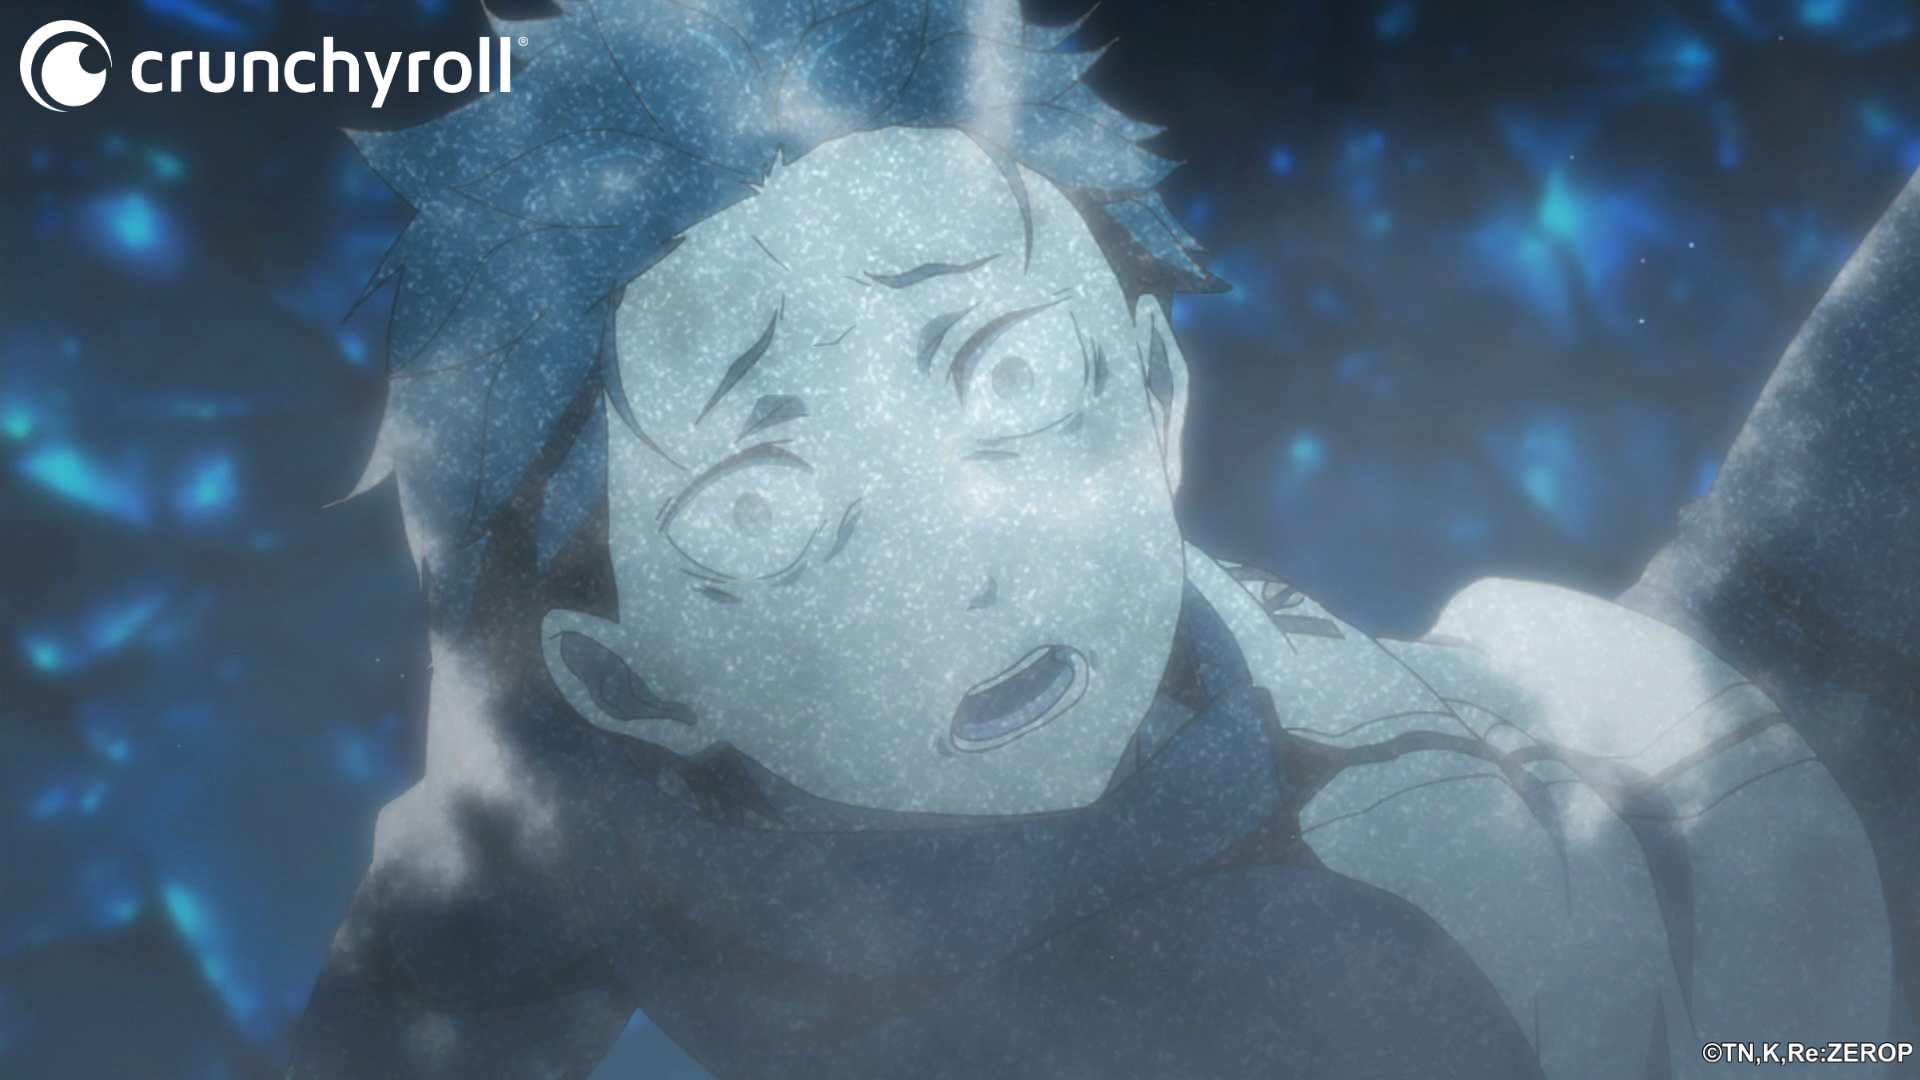 Natsuki Subaru is frozen solid by an unseen force in a scene from the Re:ZERO -Starting Life in Another World- TV anime.